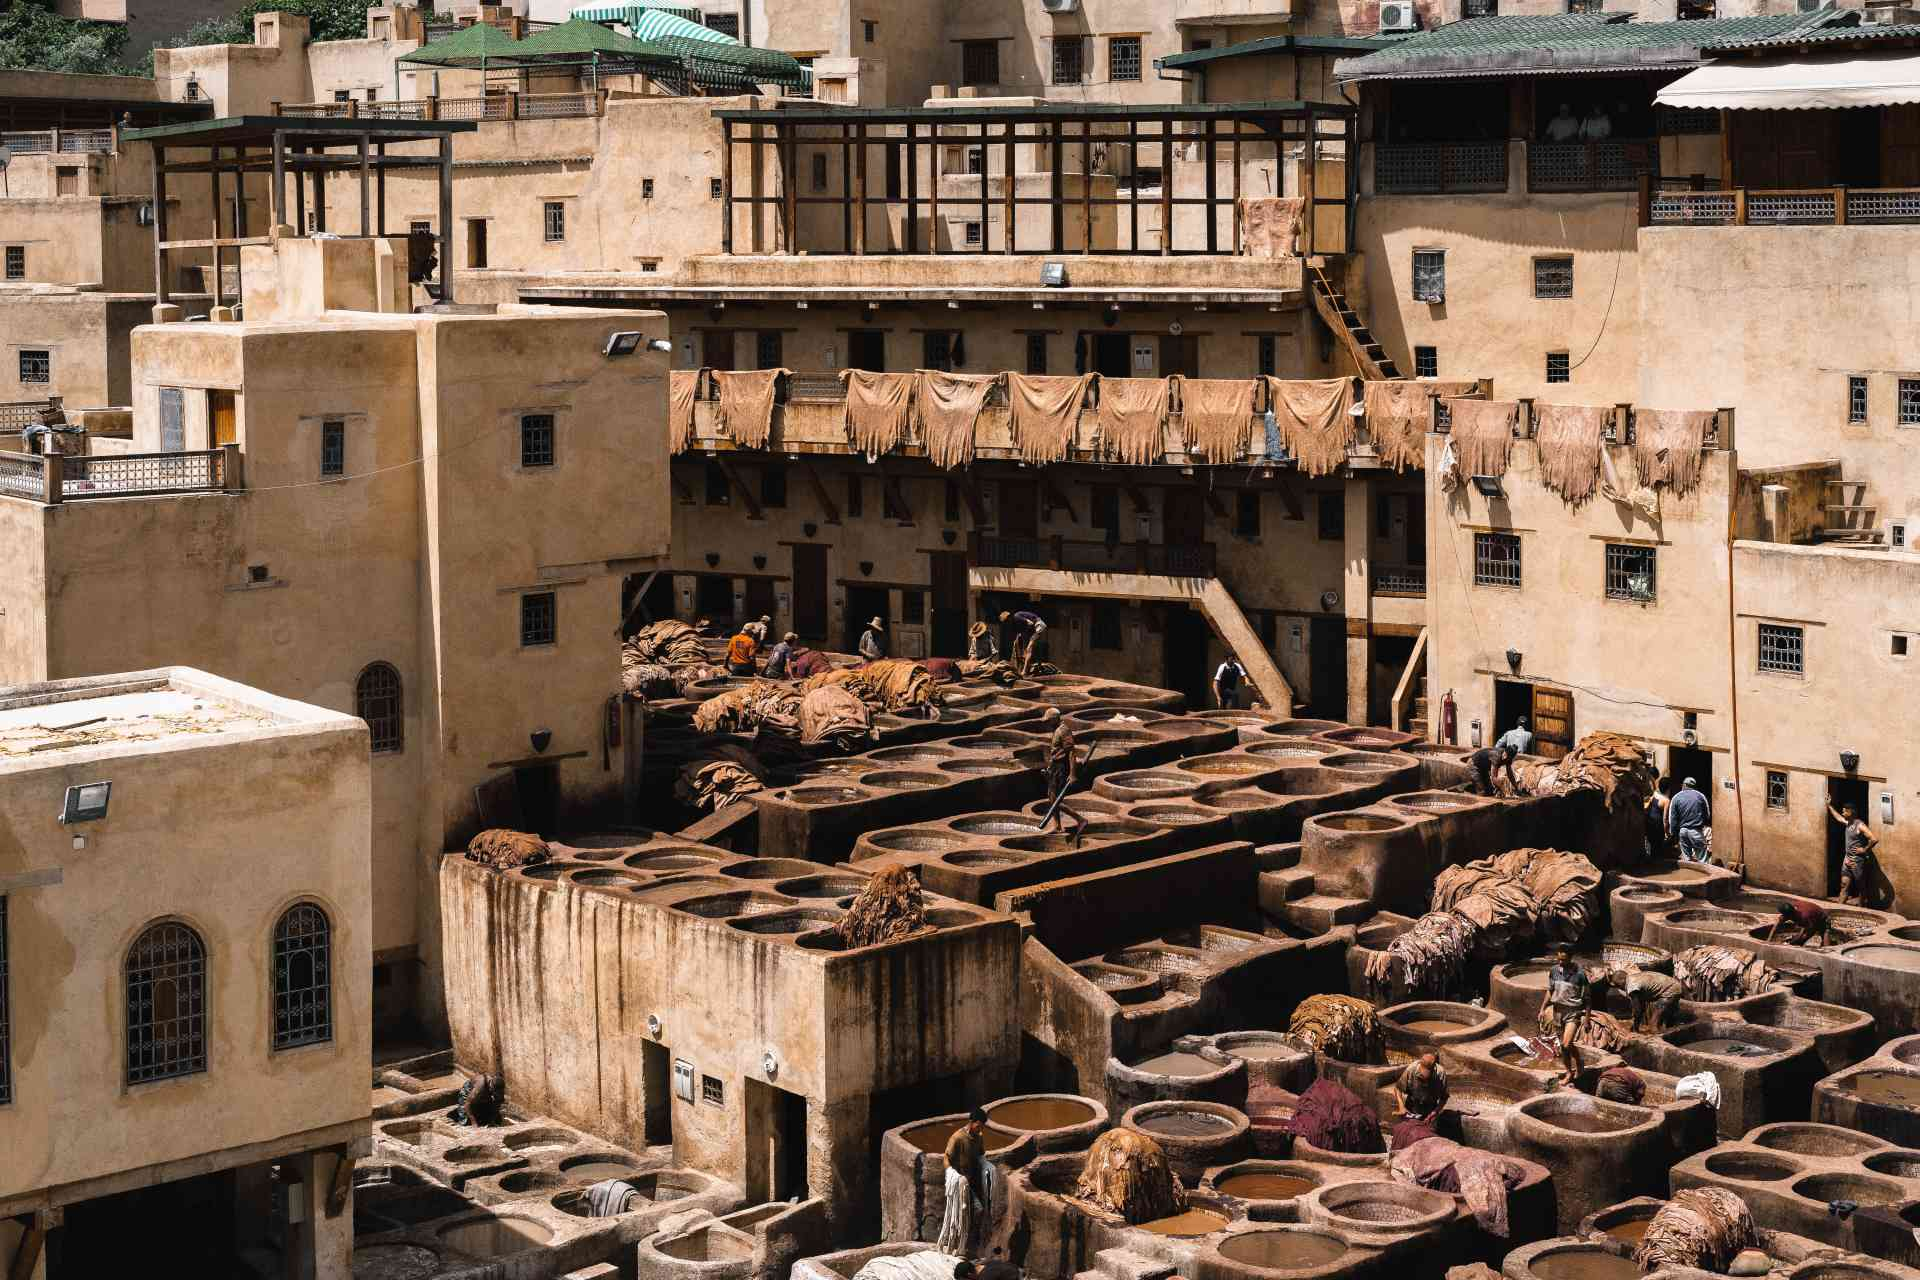 Tanneries in Fez, Morocco